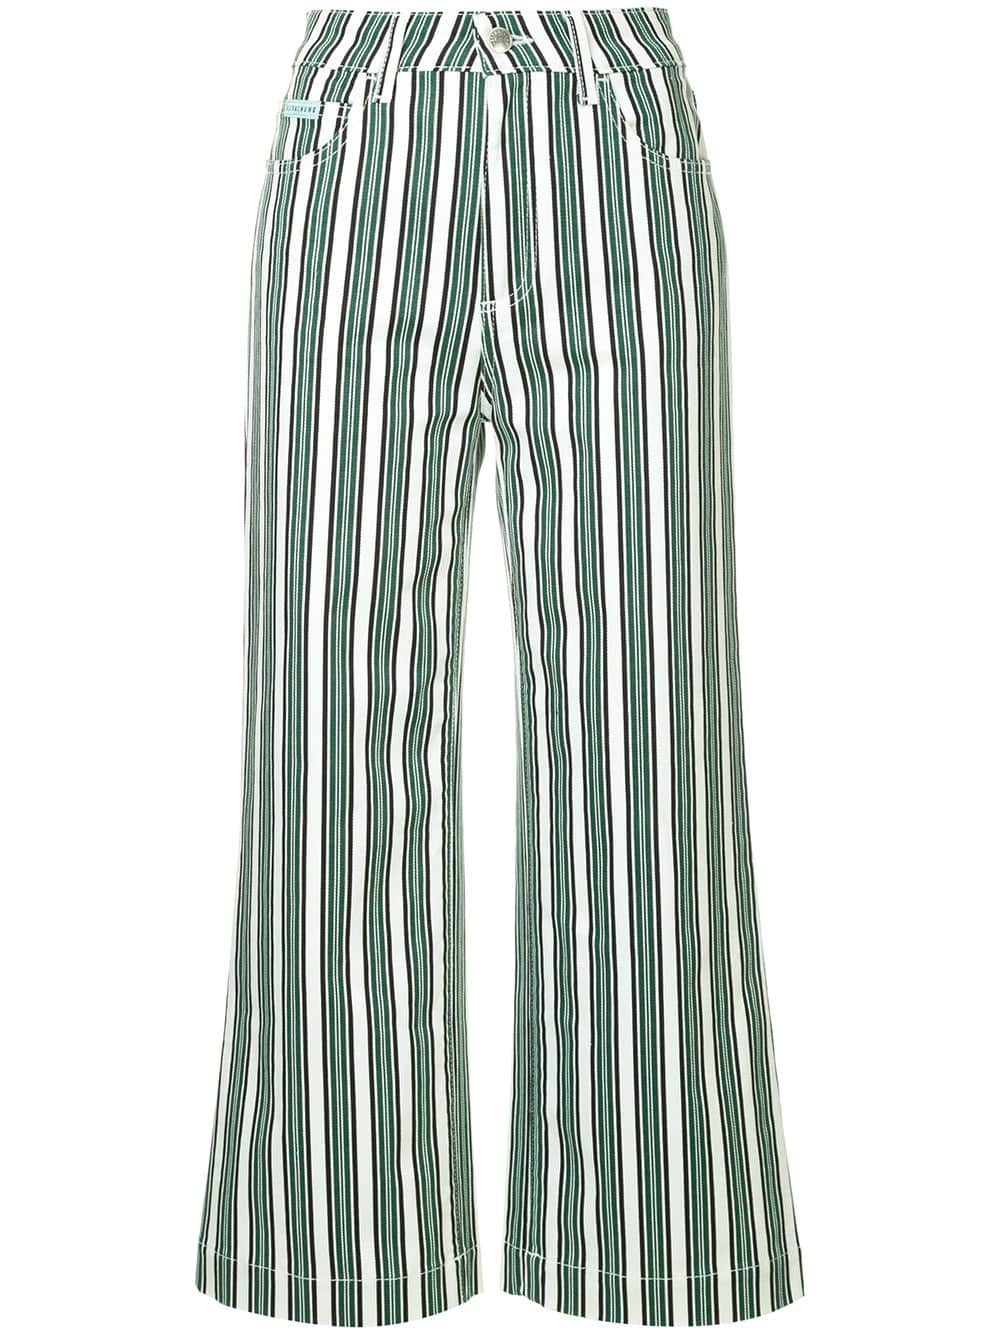 8cc630f30bee51 alexa-chung-striped-cropped-trousers-green-farfetch-com-photo.jpg 1533457615